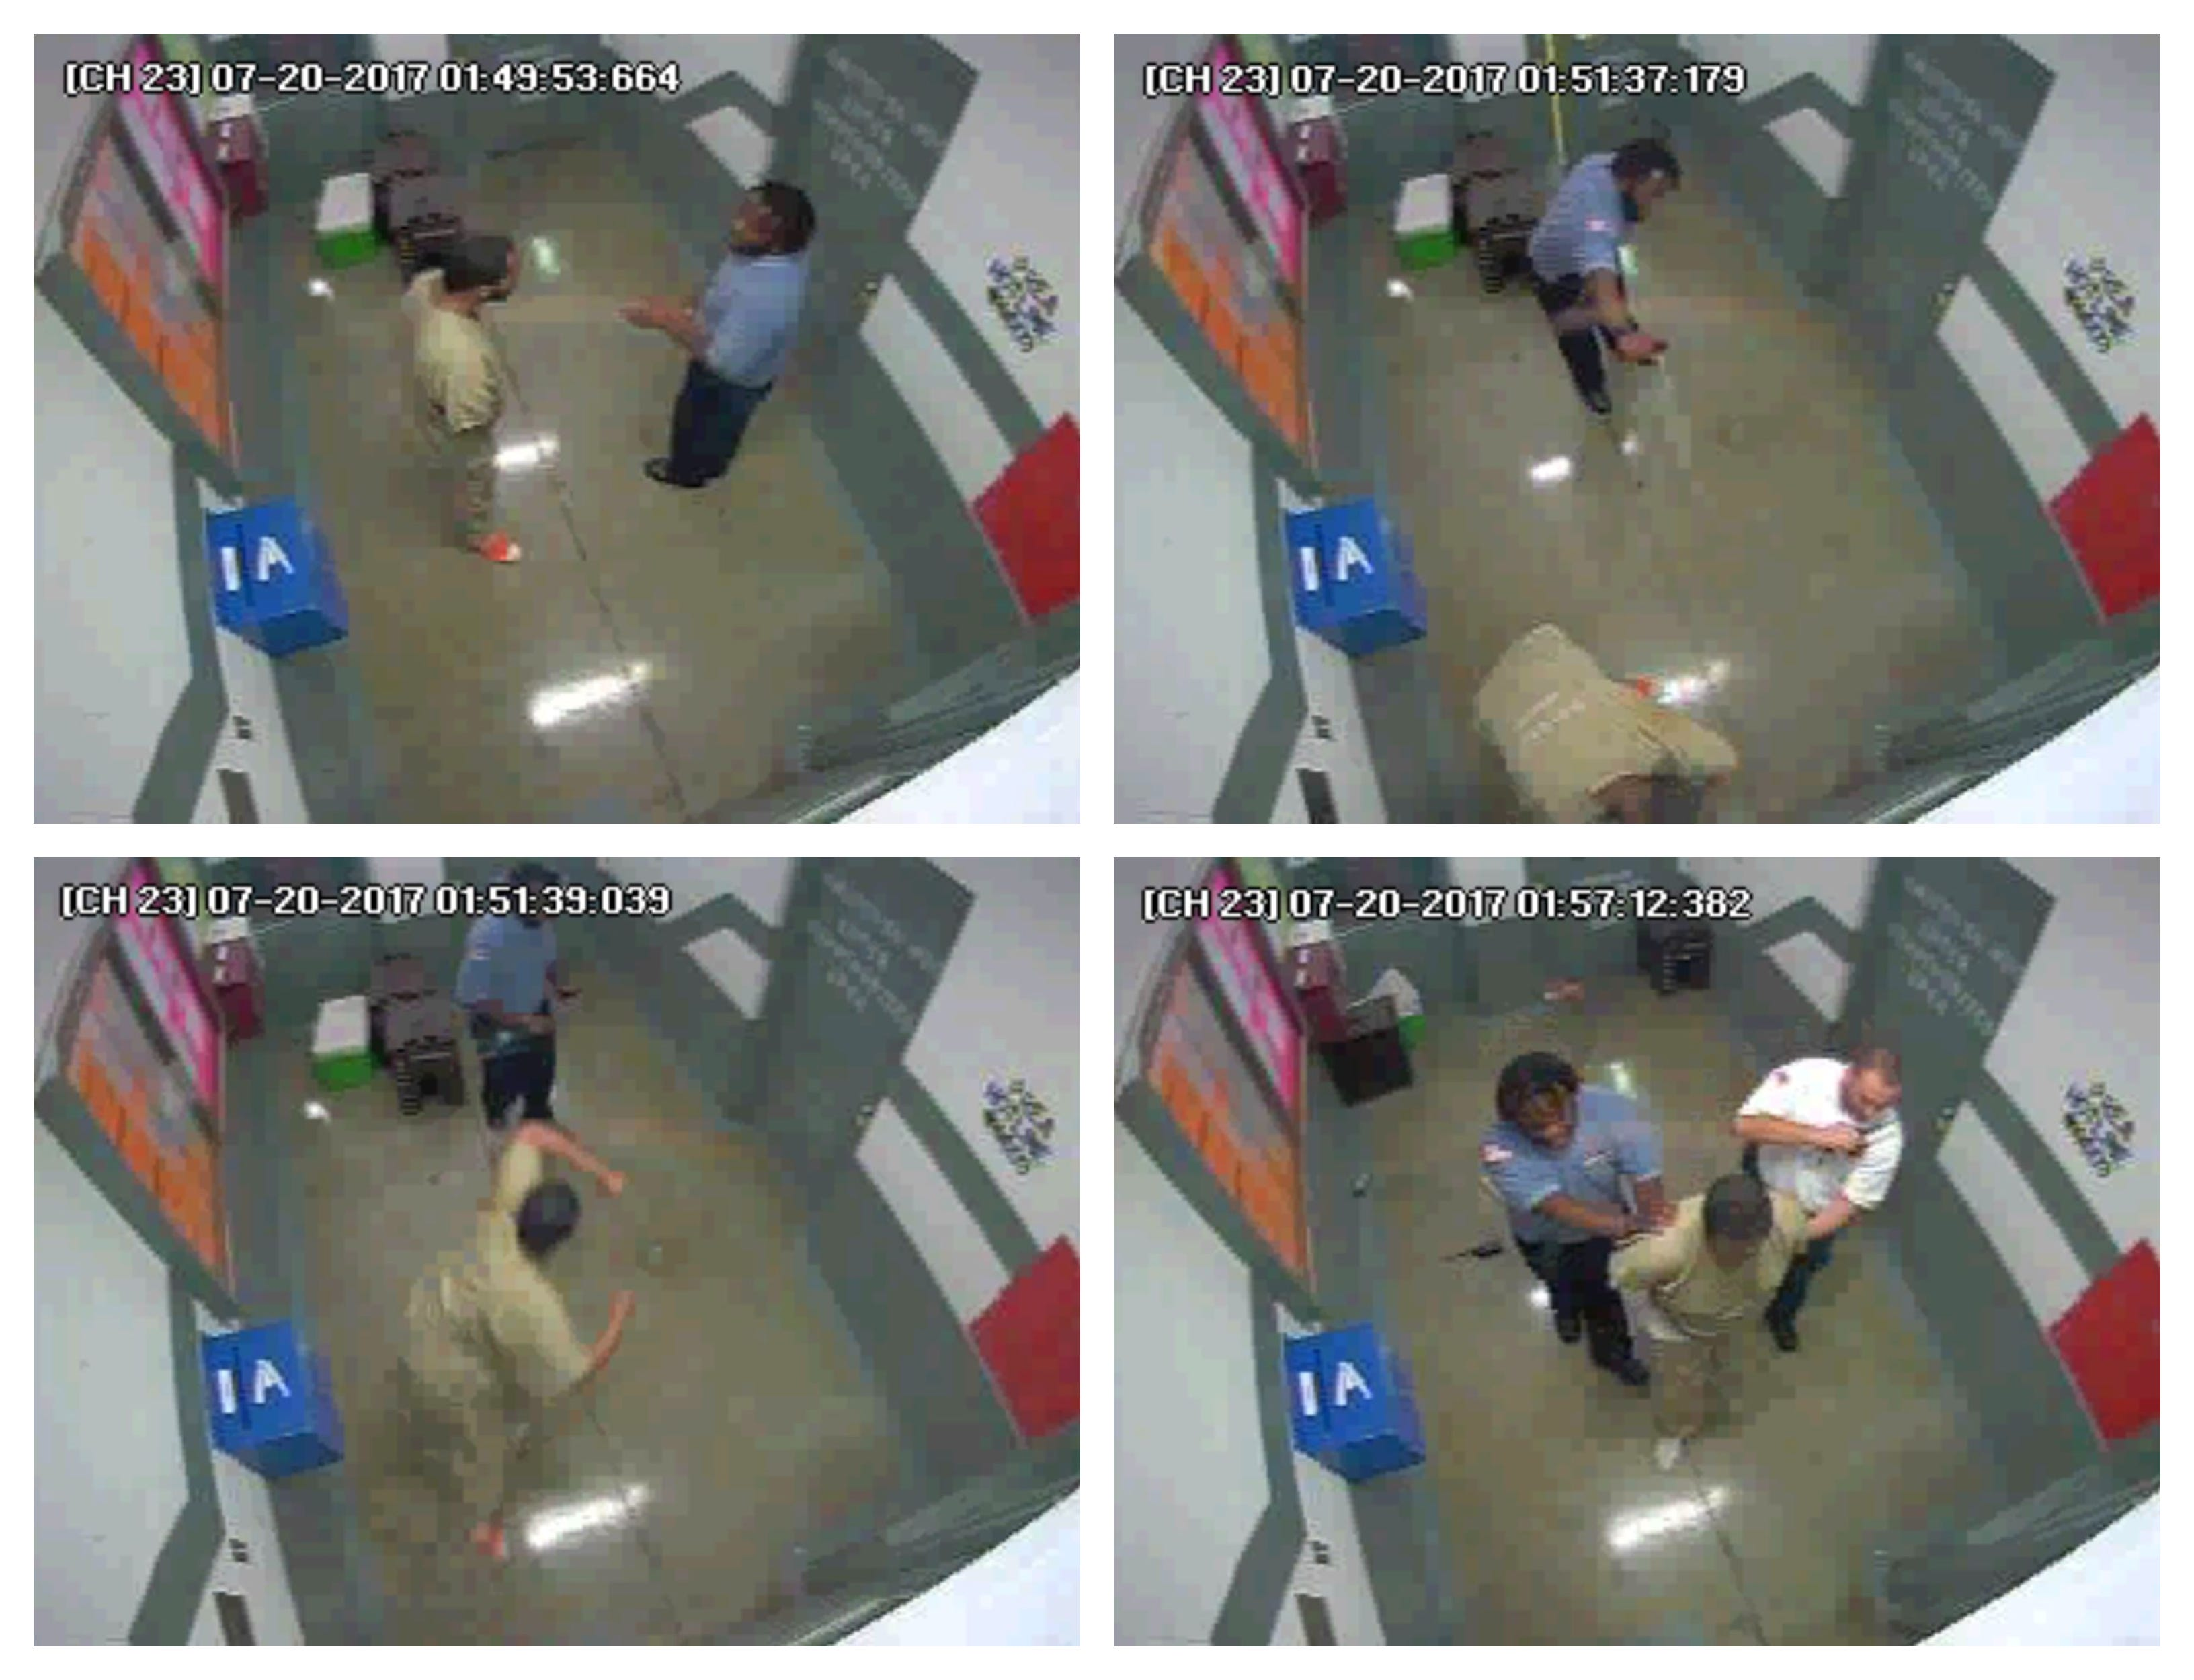 Nashville jail video shows guard assault inmate with pepper spray